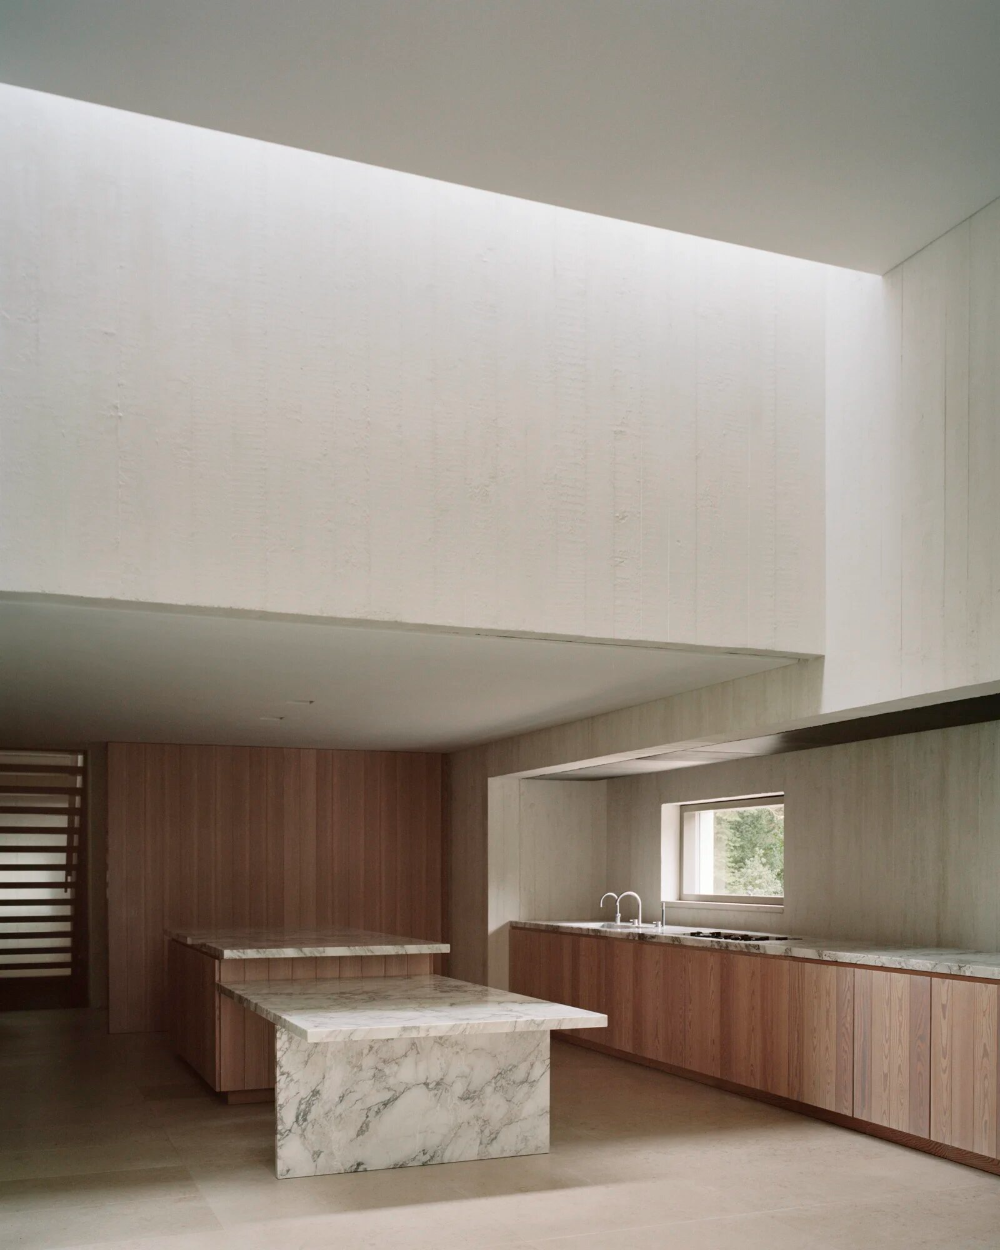 Concrete Home With Garden In Waalre By Russell Jones Architecture Design Visual Russell Jones Concrete Home Villa